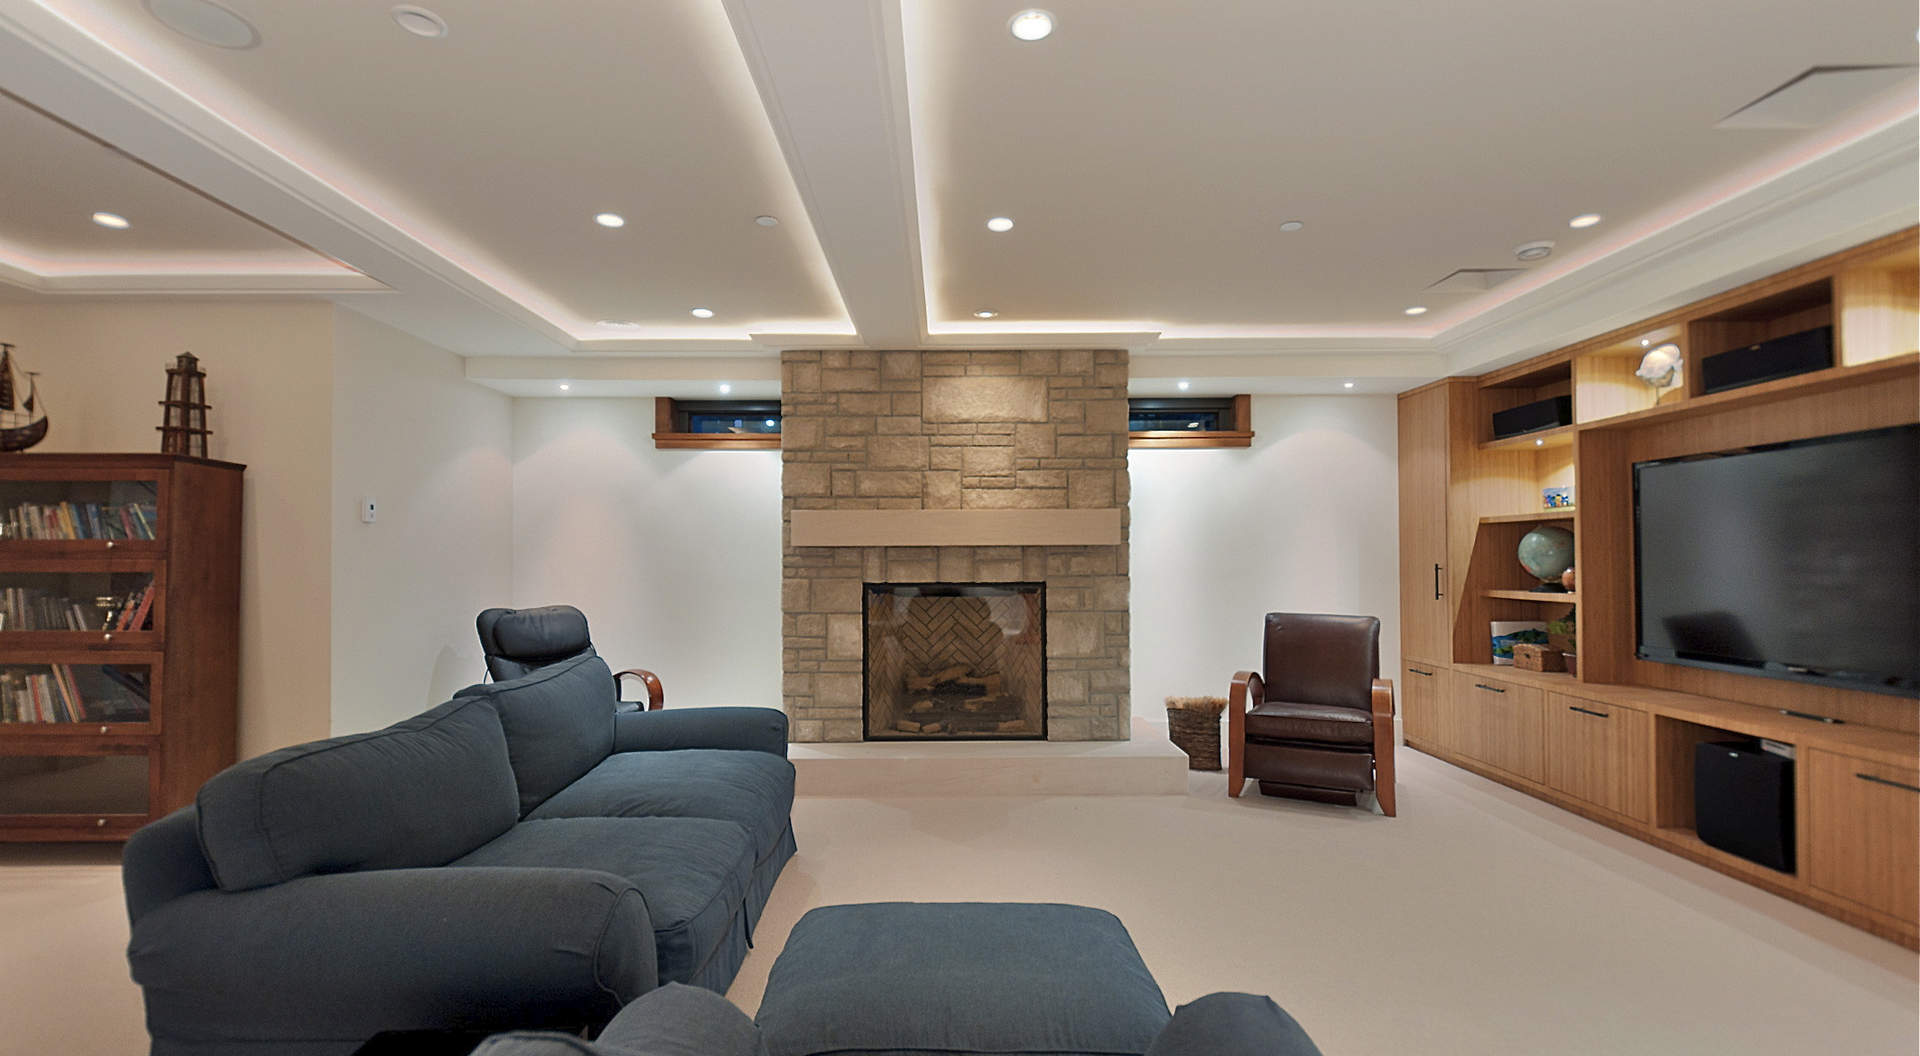 Knockout Interior Appealing Modern White Coffered Ceiling With Lights  Matched With White Wall Plus Fireplace And Grey Sofa